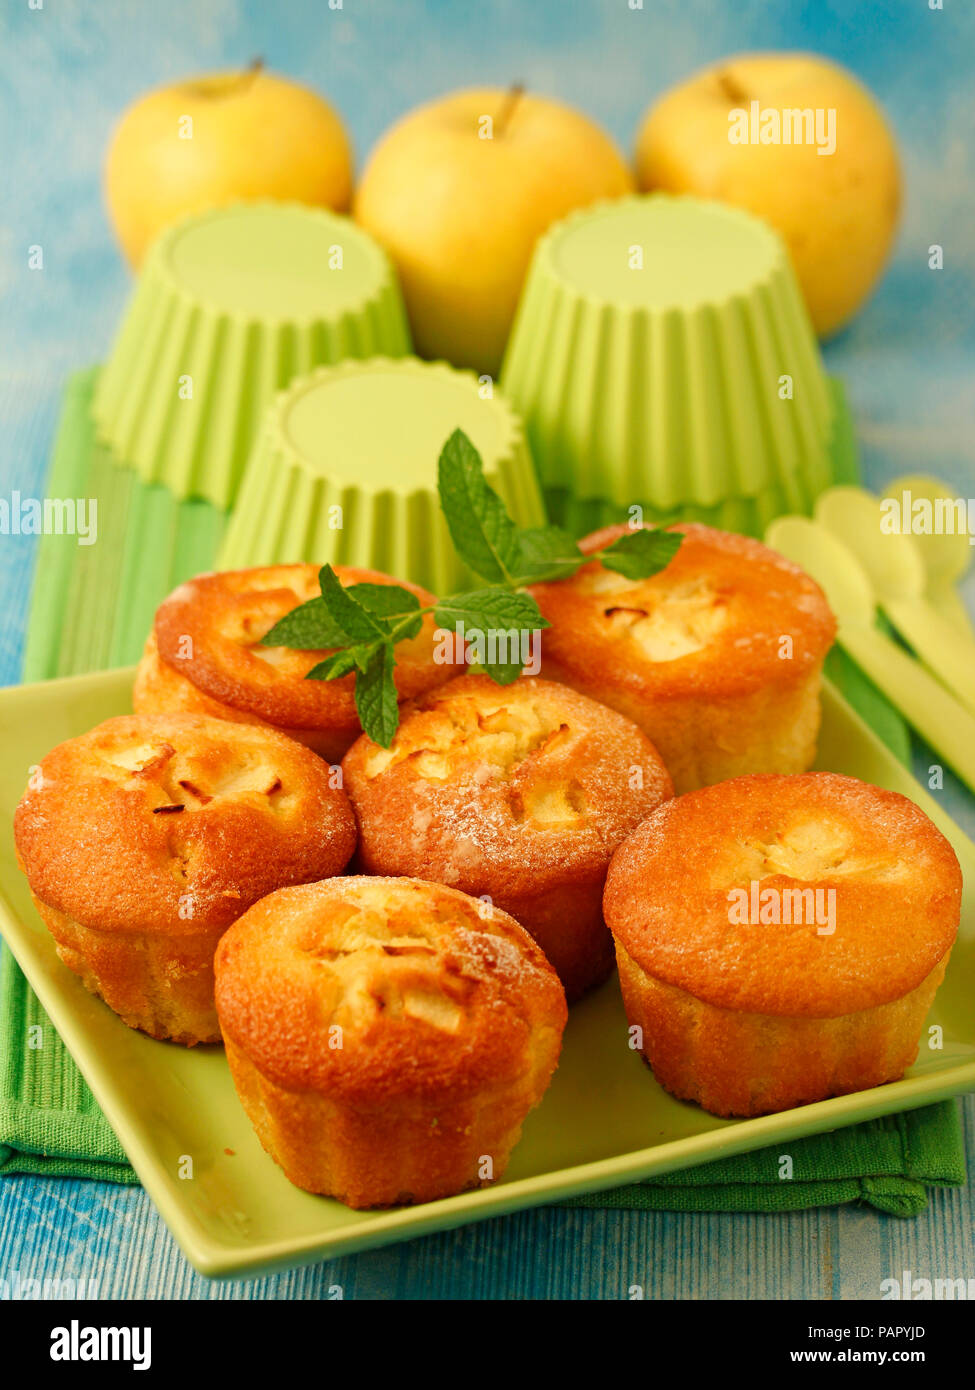 Muffins à la pomme. Photo Stock